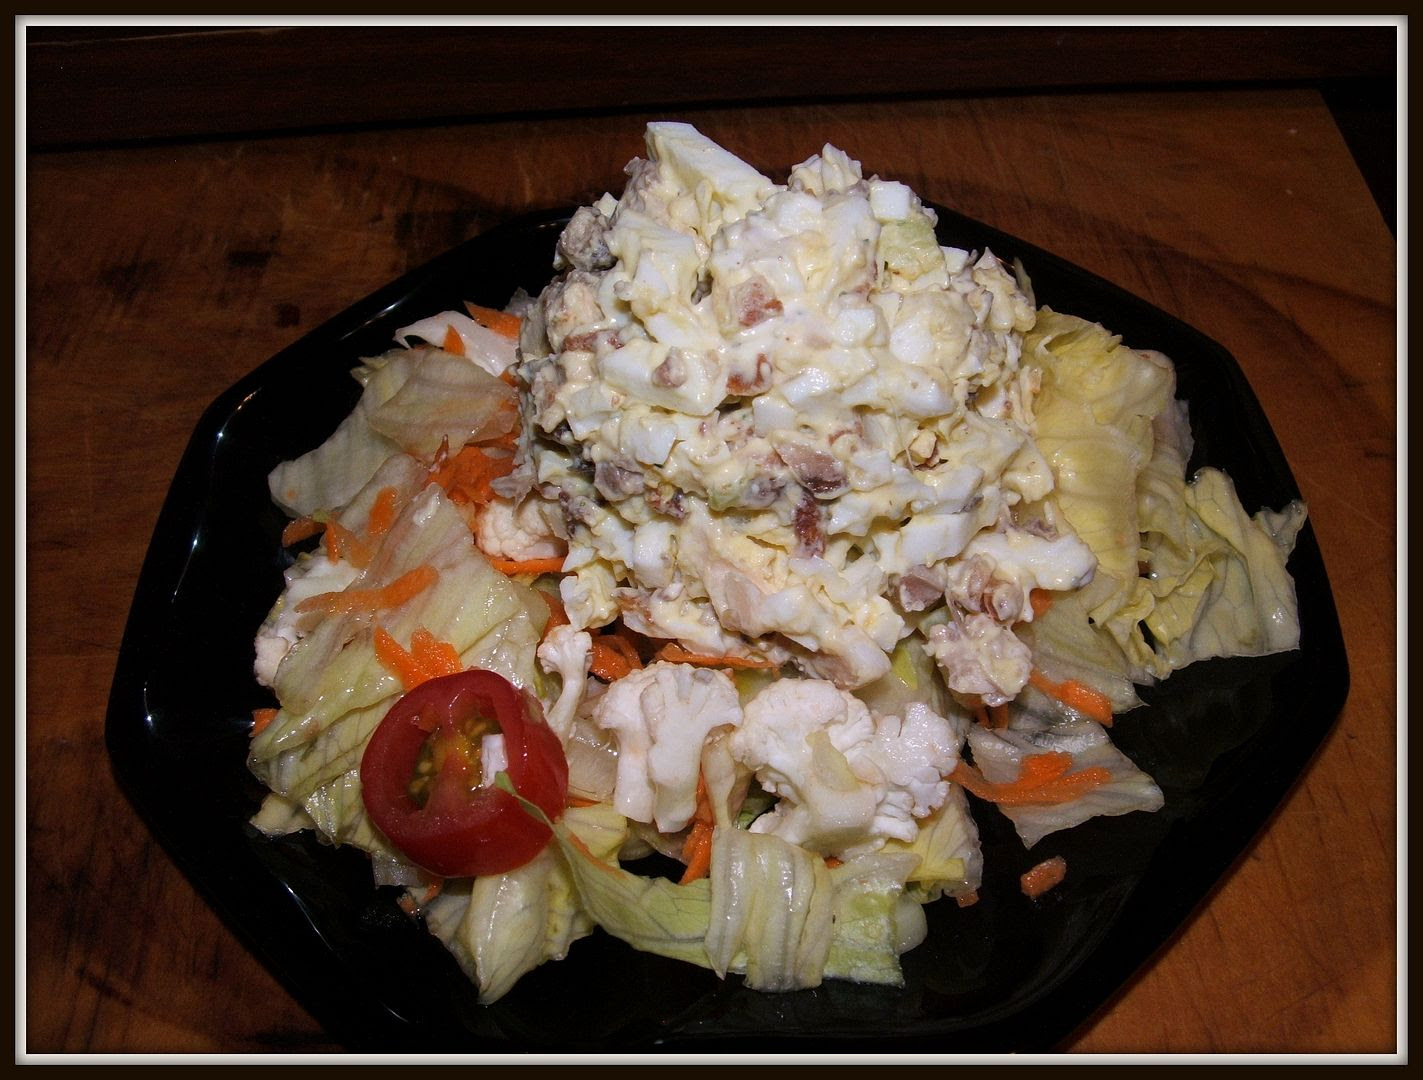 Bacon Ranch Egg Salad by Angie Ouellette-Tower for godsgrowinggarden.com photo 013_zps0bcfa85d.jpg